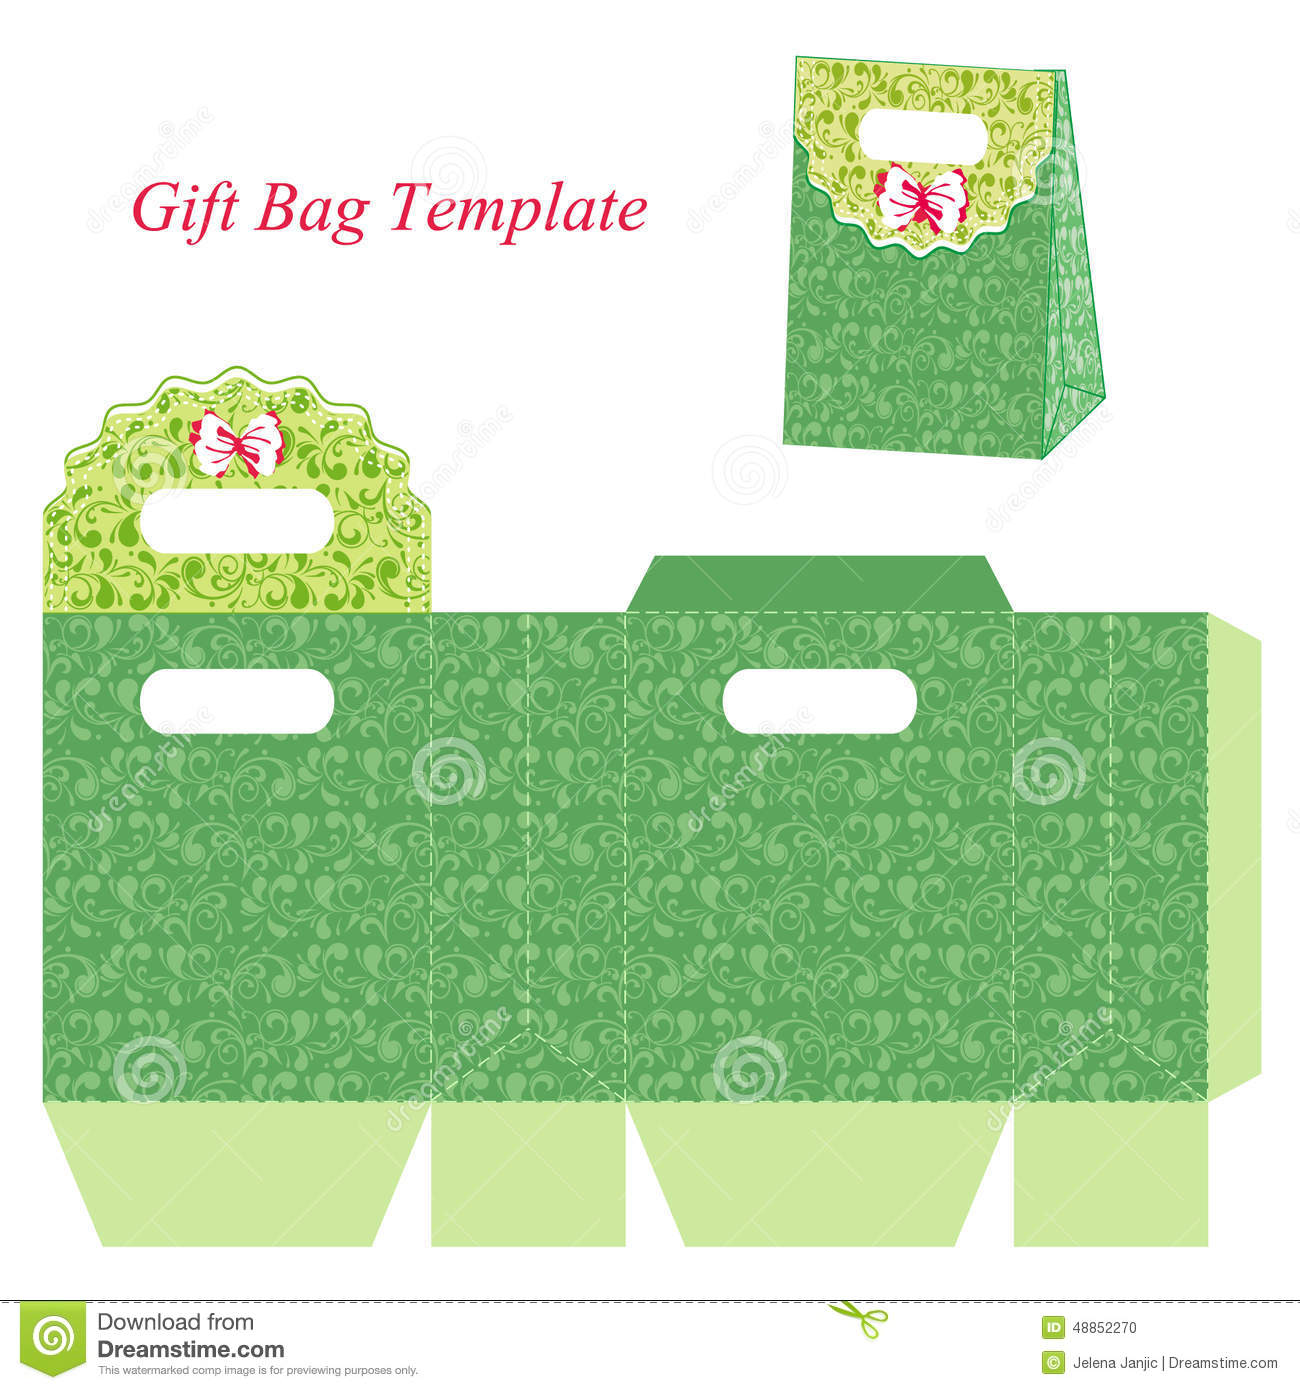 ... bag with round lid. Vector illustration of a box and a box template